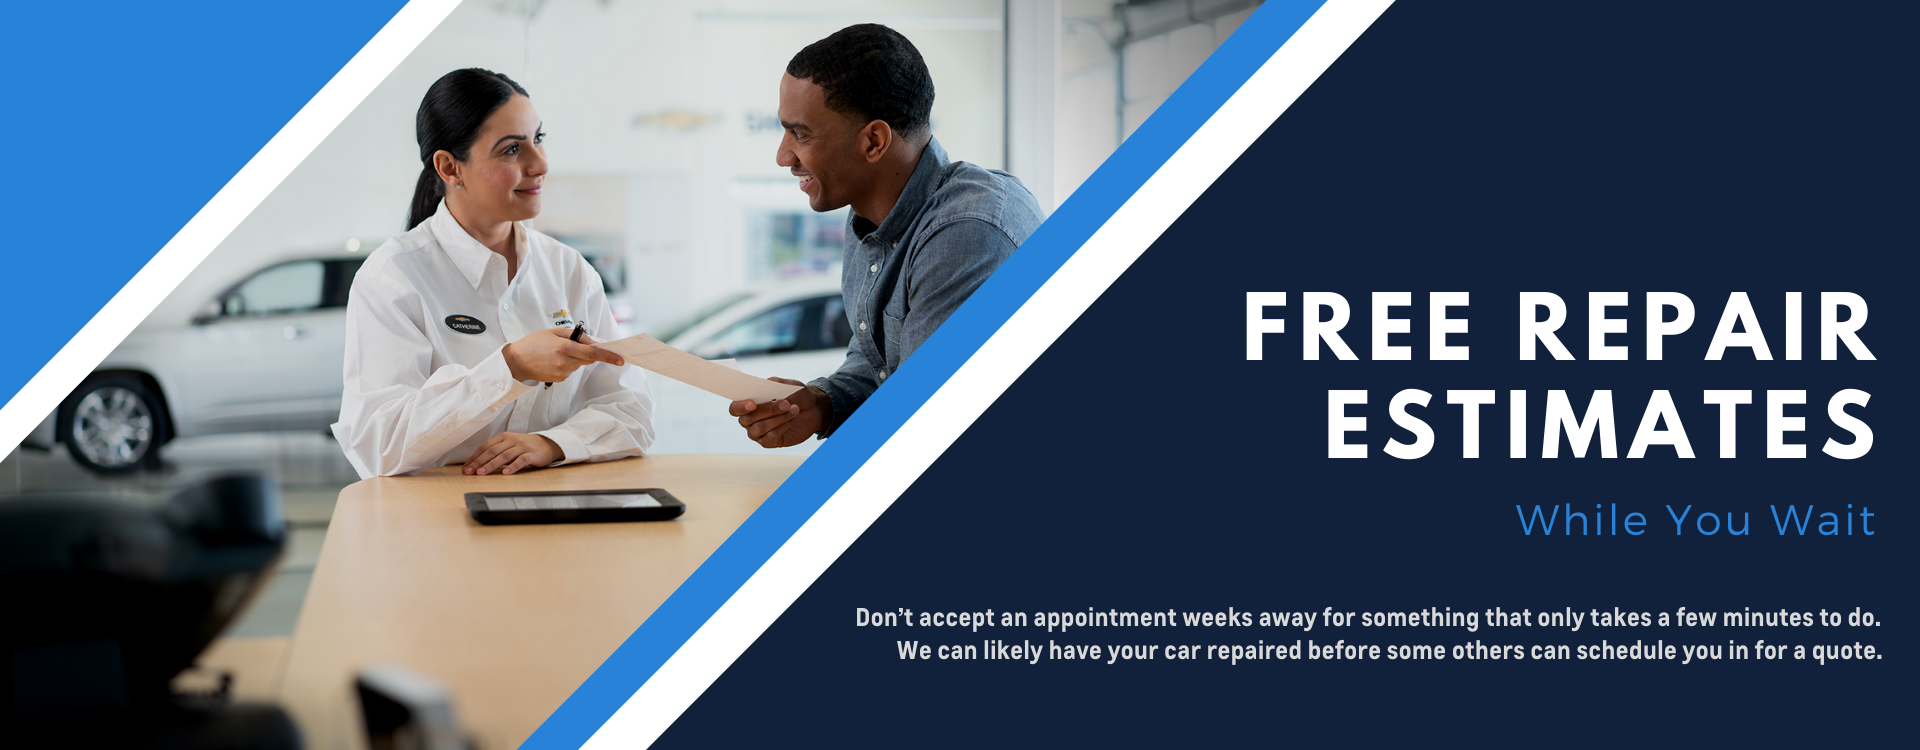 Free Repair Estimates